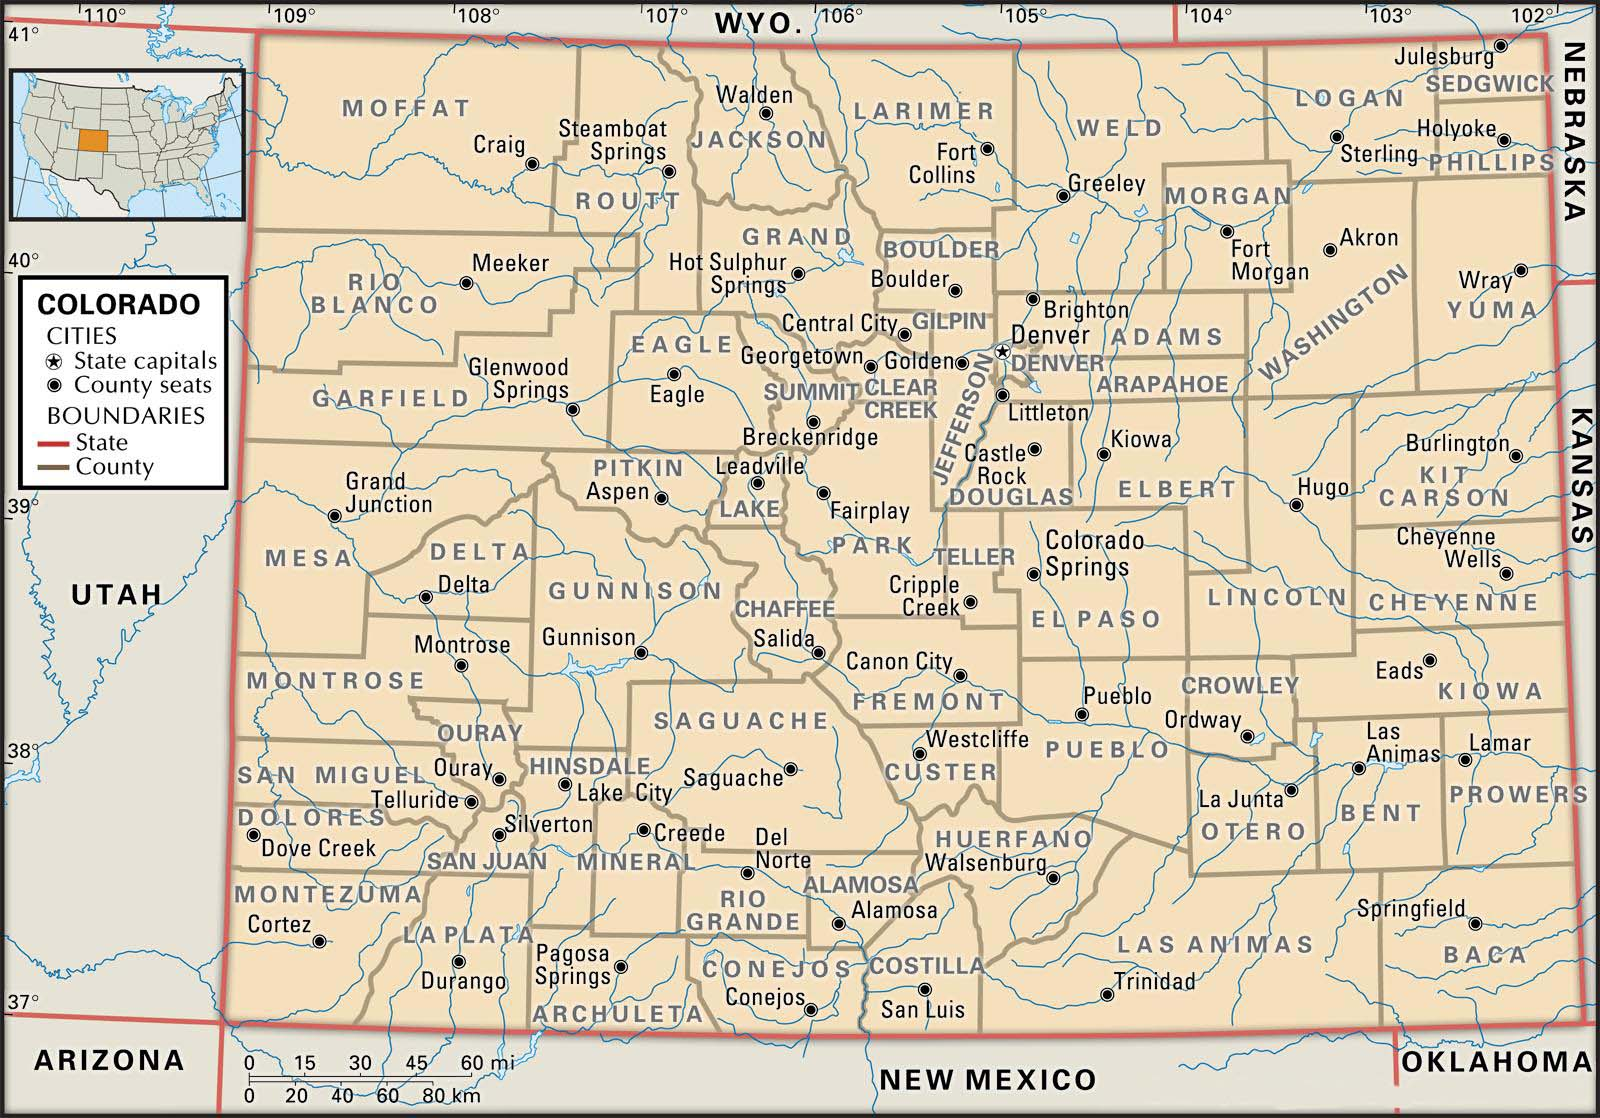 Colorado City Utah Map.State And County Maps Of Colorado